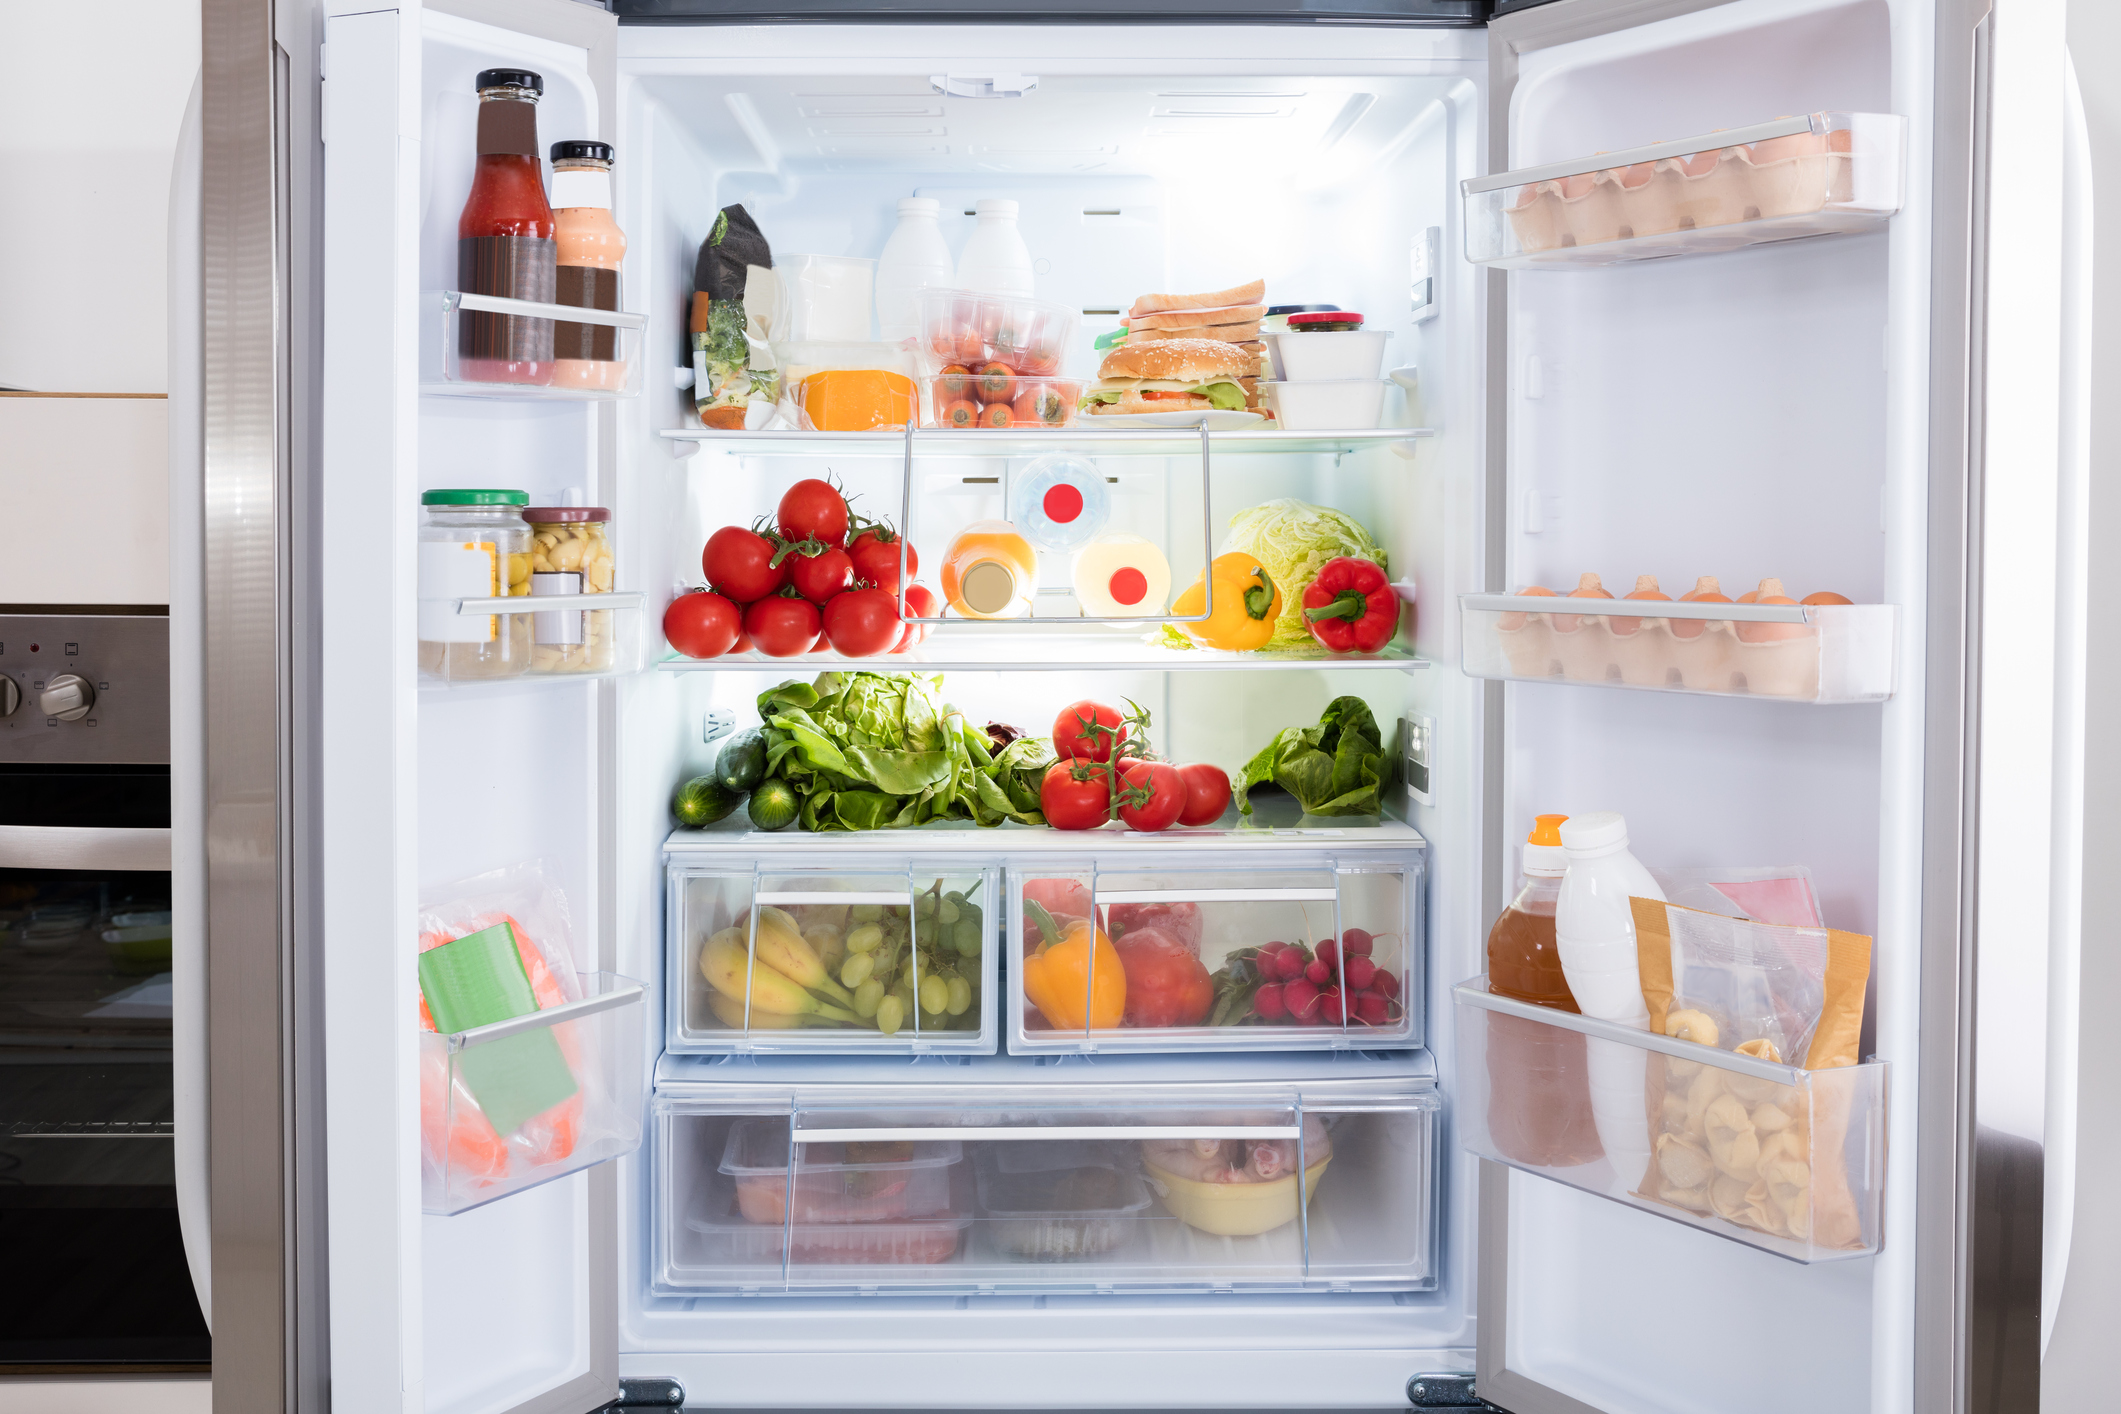 Tips So You NEVER Have to Clean Your Fridge Again